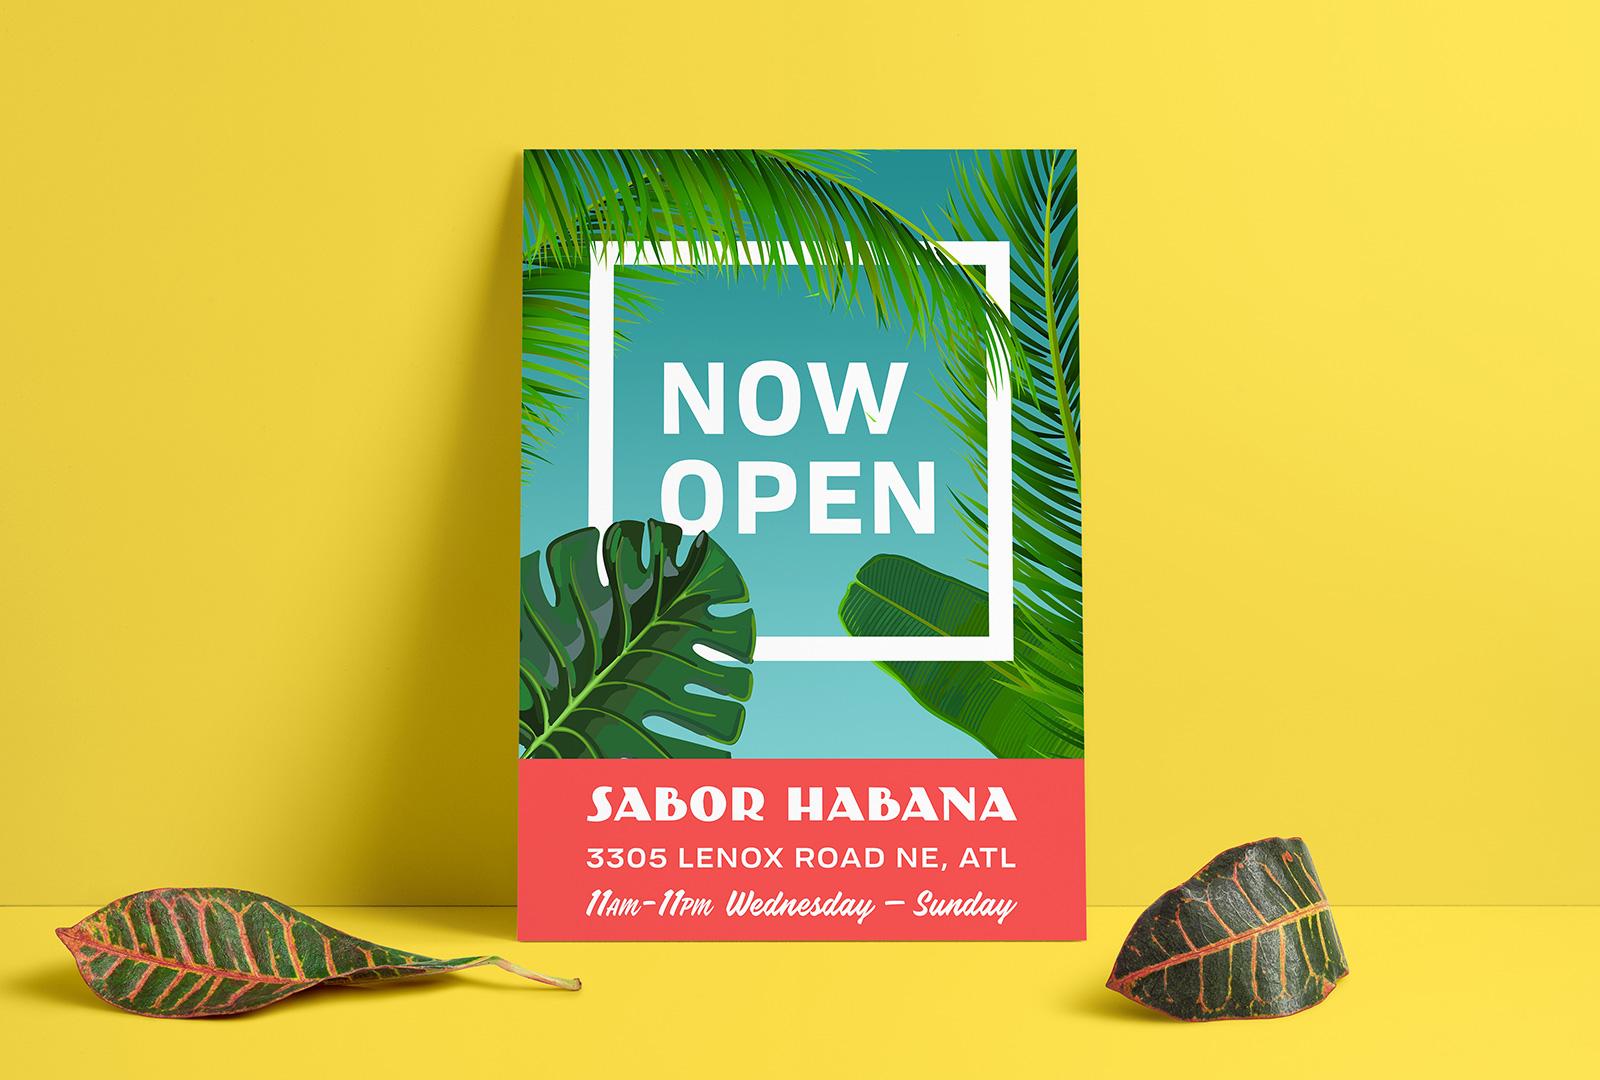 Restaurant Now Open Poster Design for Sabor Habana